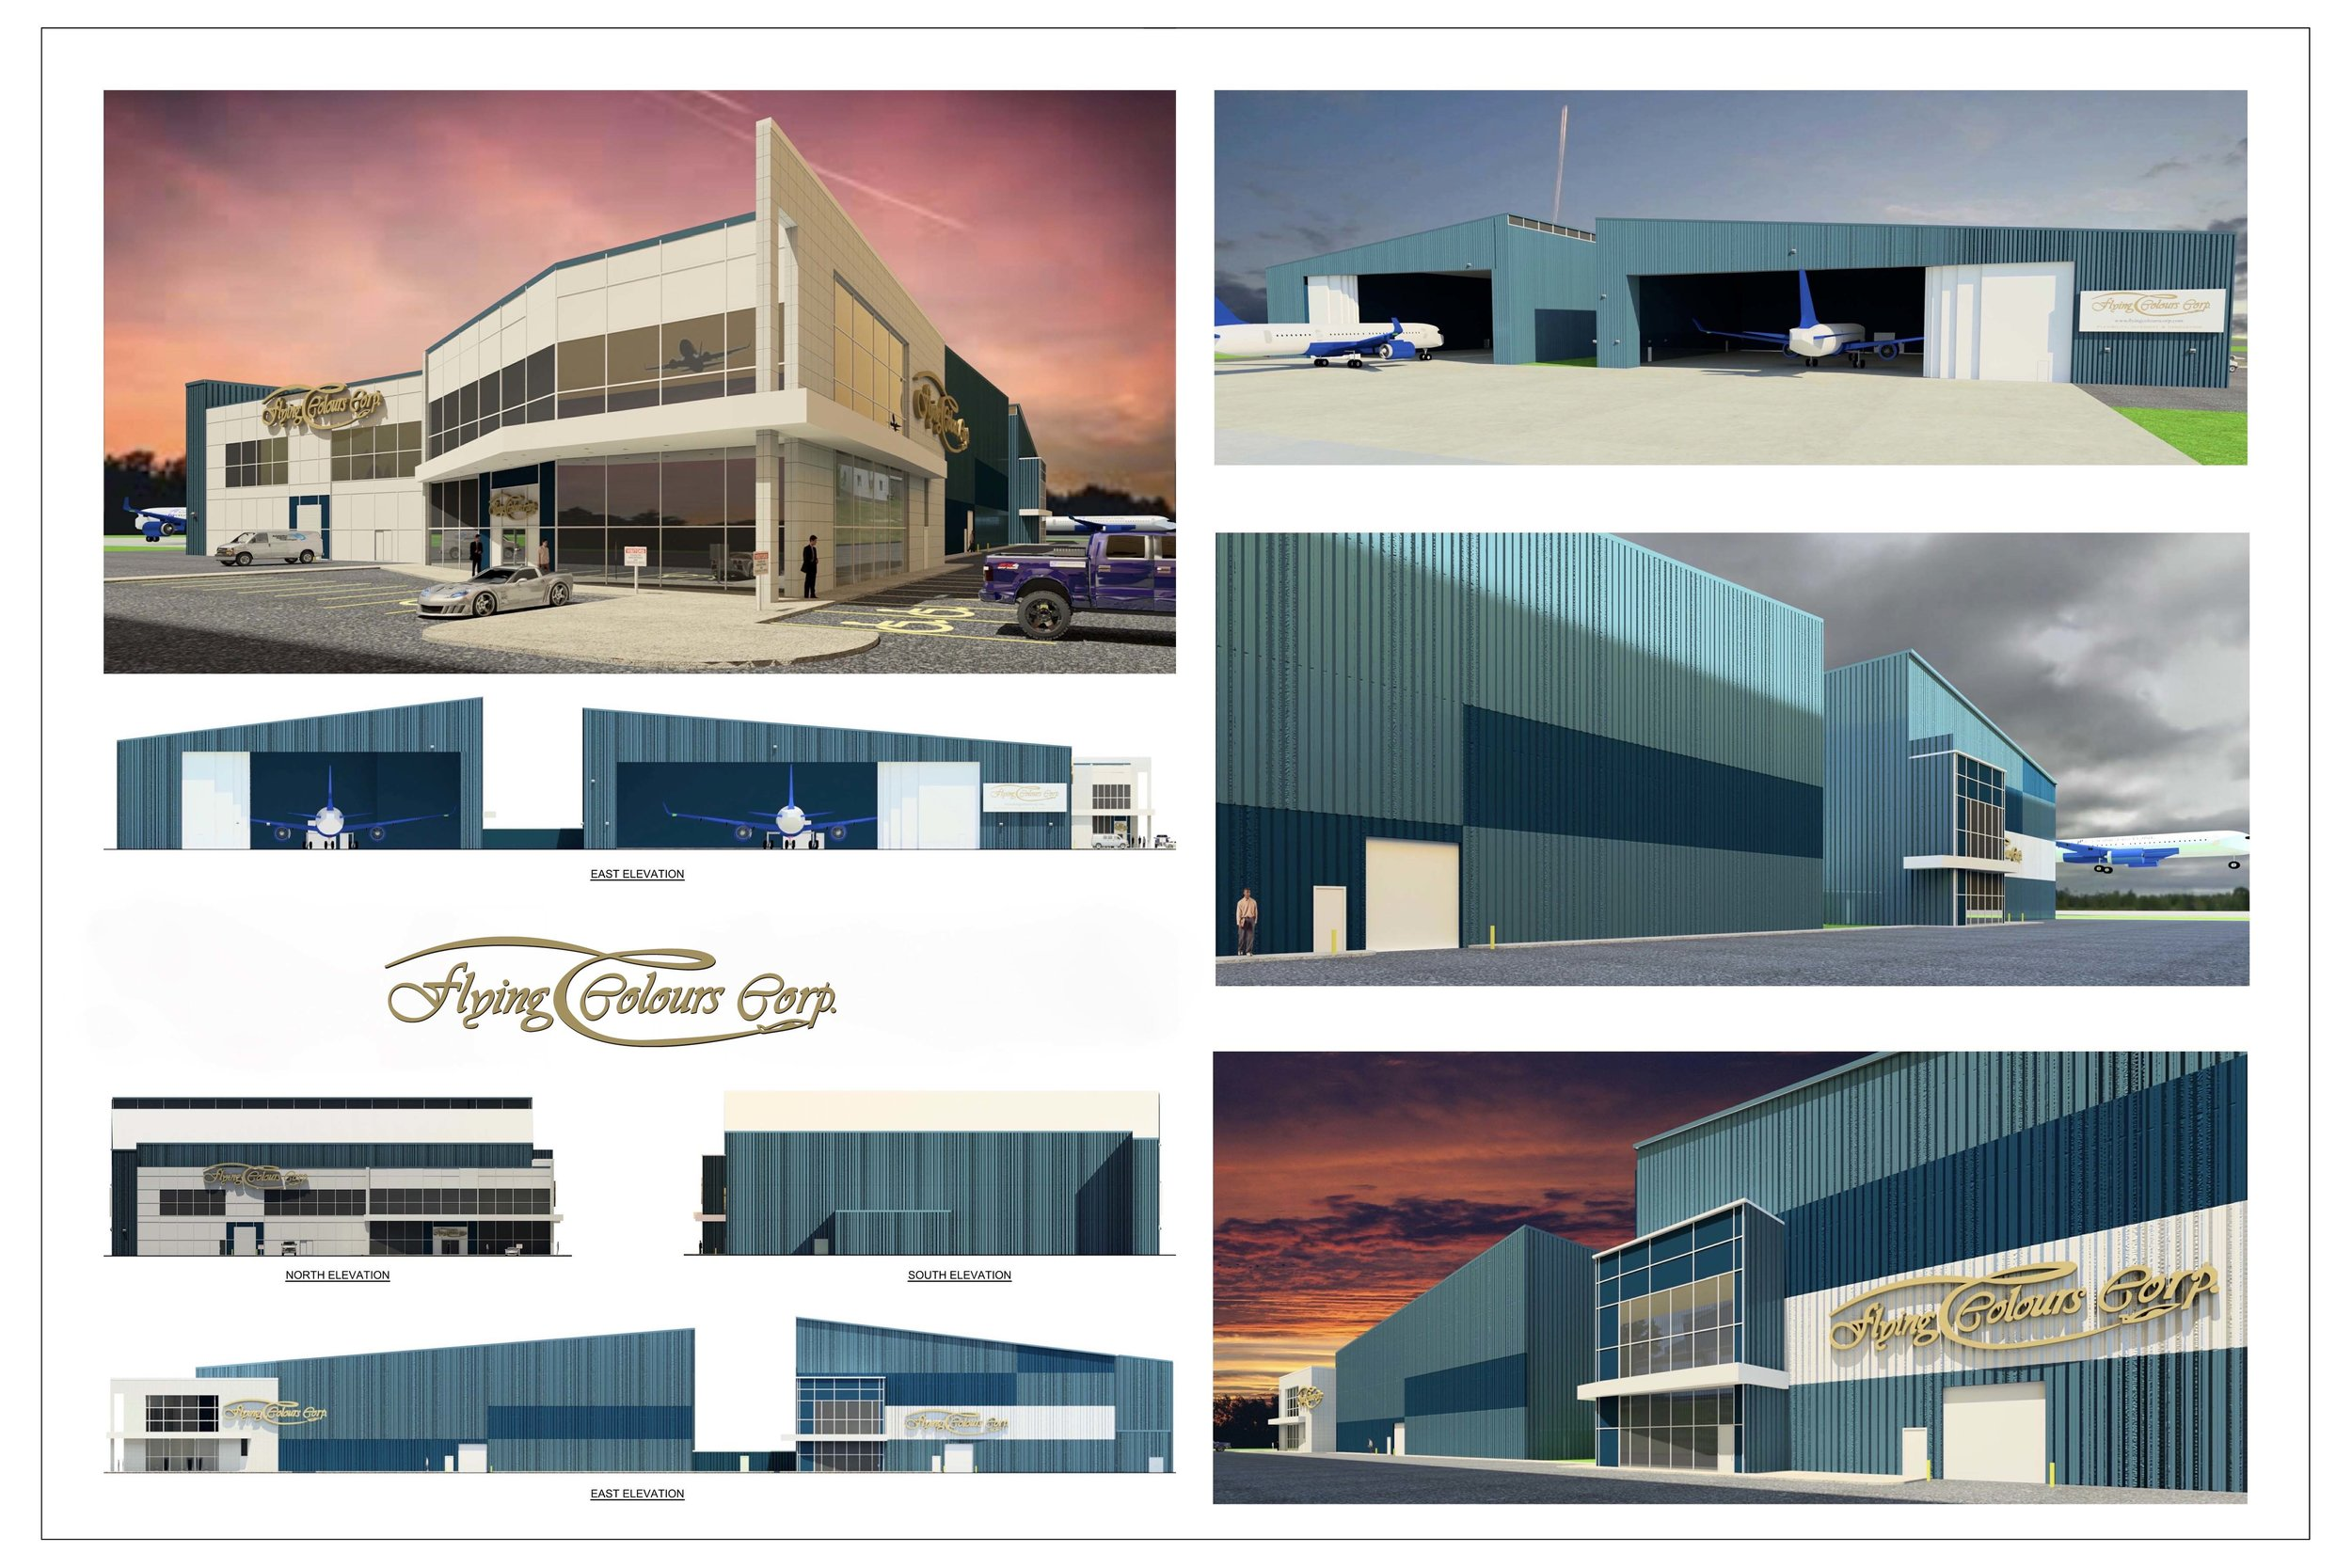 Renderings courtesy Flying Colours